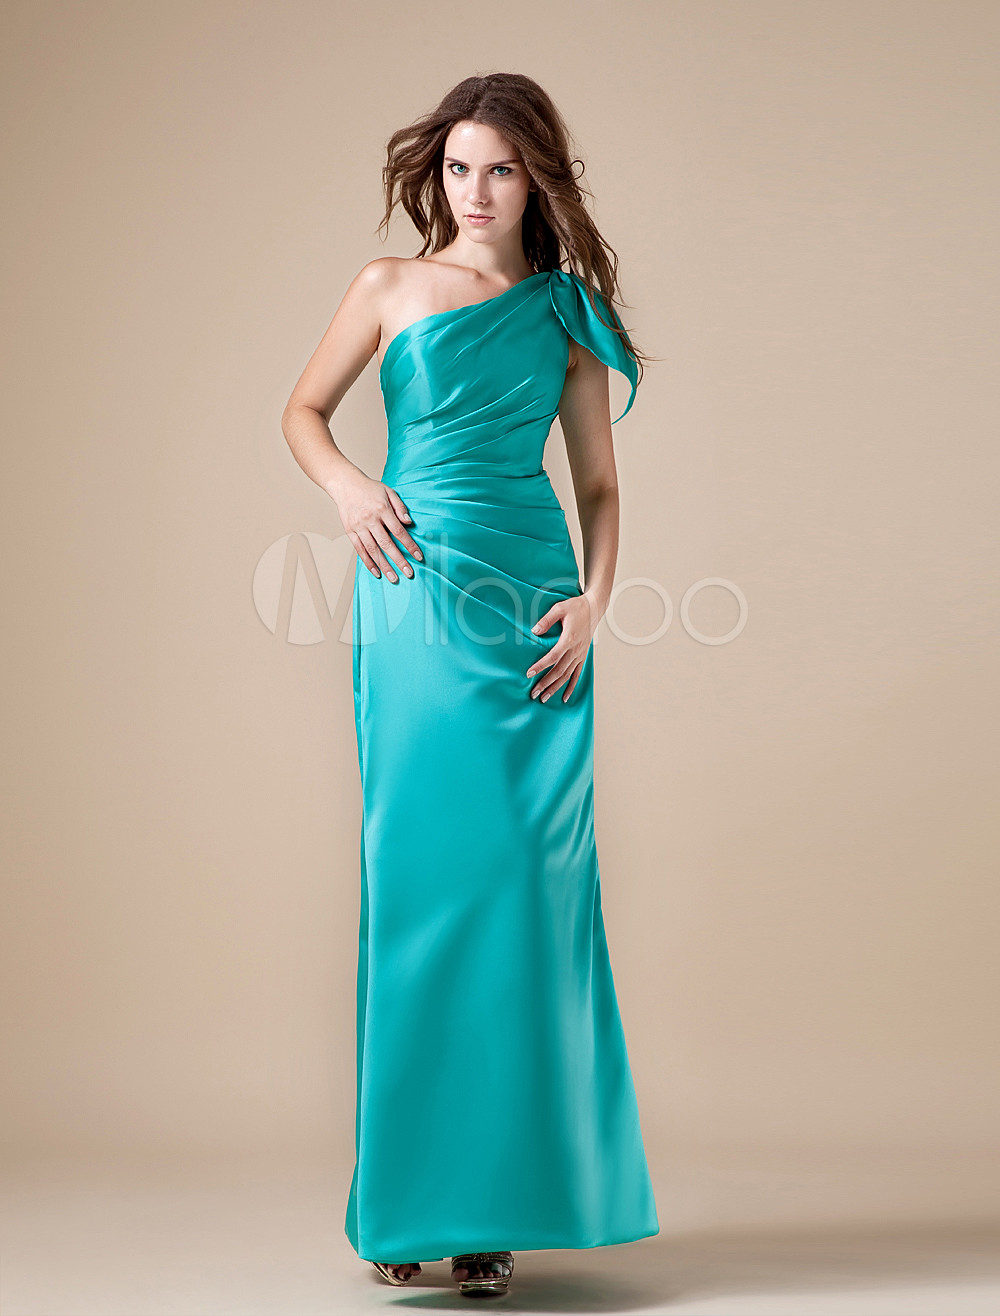 Sheath Bridesmaid Dress Turquoise One Shoulder Satin Bow Ruched Maxi Evening Dress